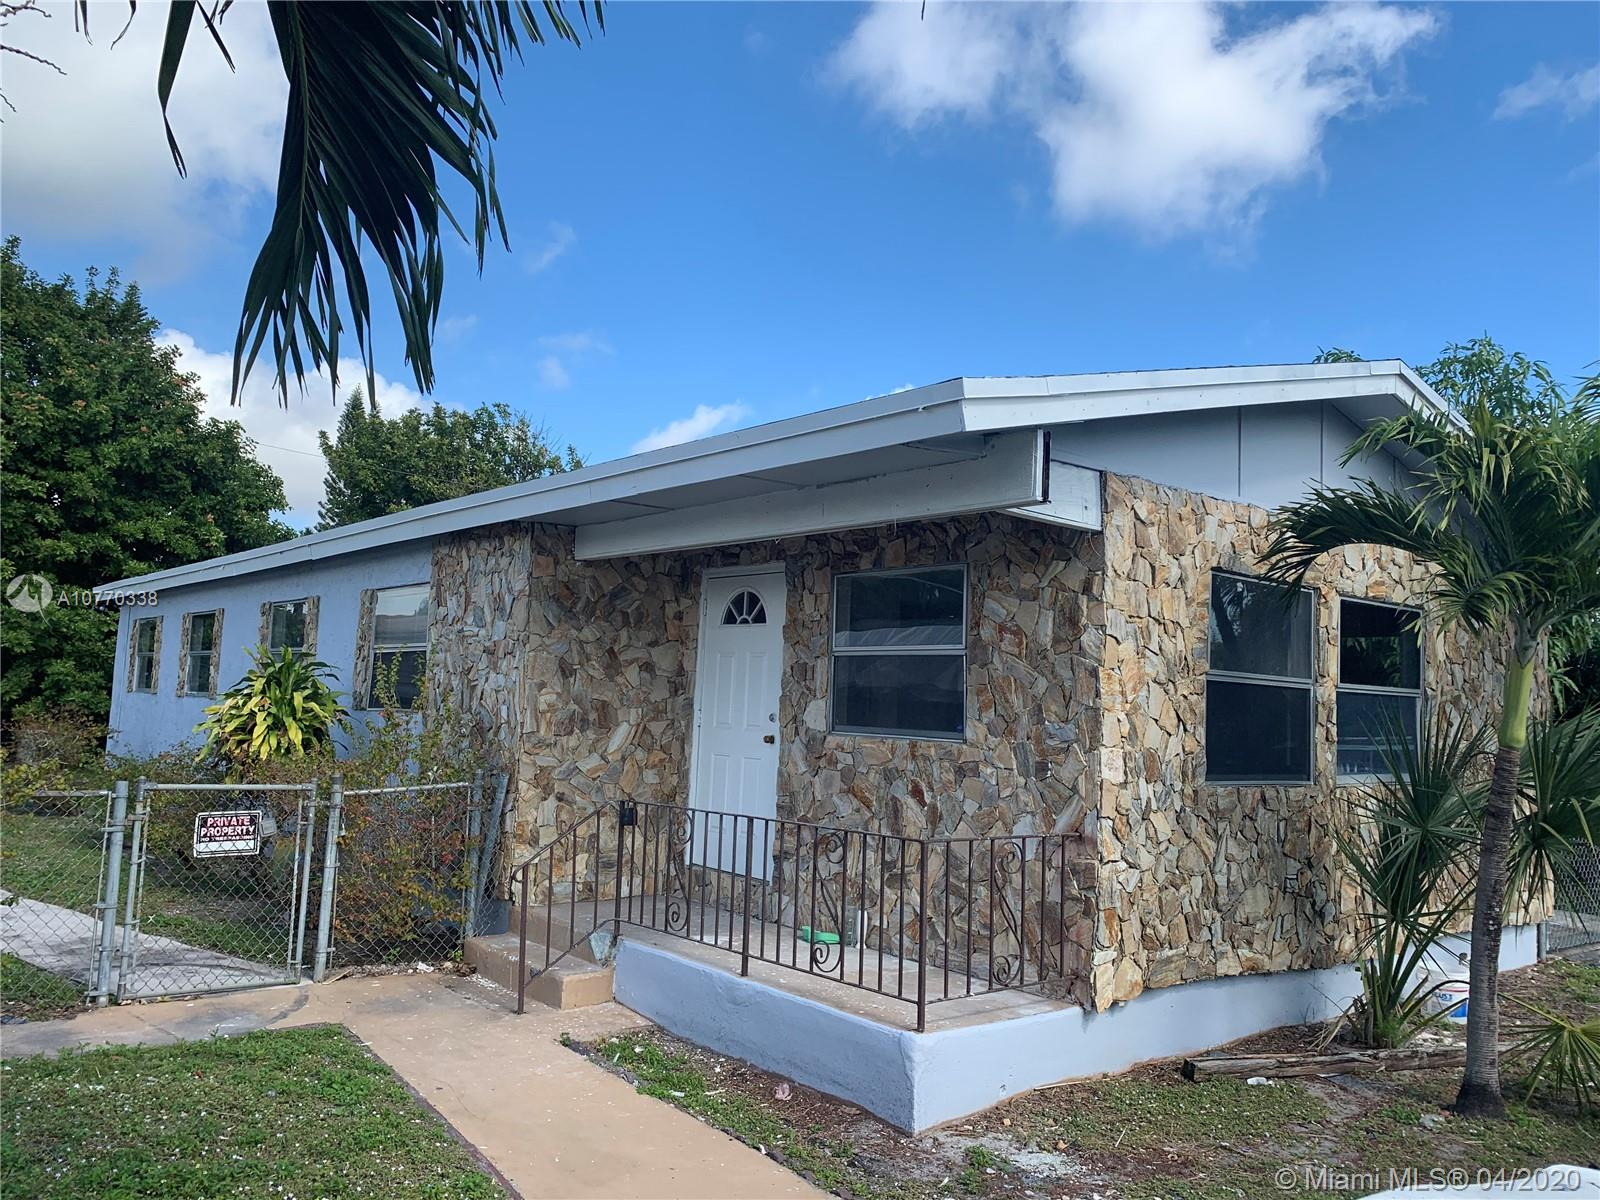 Fully remodeled 3 bedrooms with 2 bathrooms with a possible fourth bedroom Large lot with room for a boat or cars in the driveway. New roof and new A/C unit. Hurry will not last at this price. All offers must include proof of funds or Loan Pre ApprovalShowings after November 15th, 2019